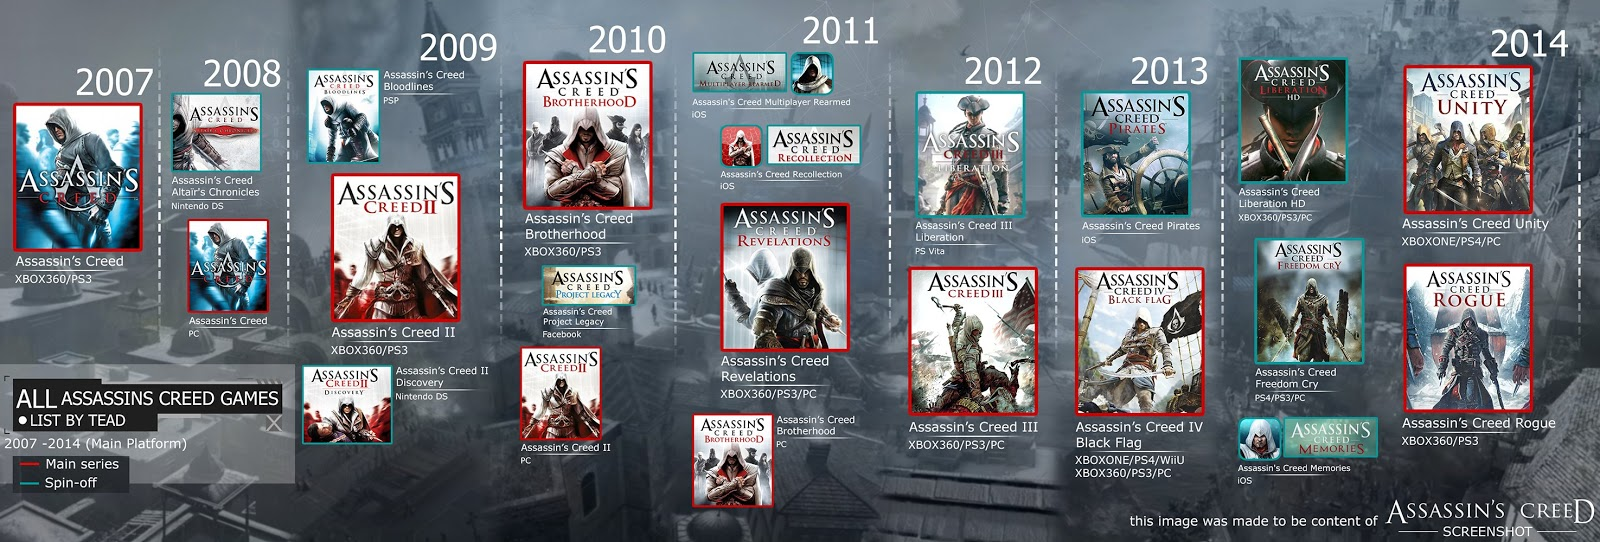 Assassin's Creed All Games